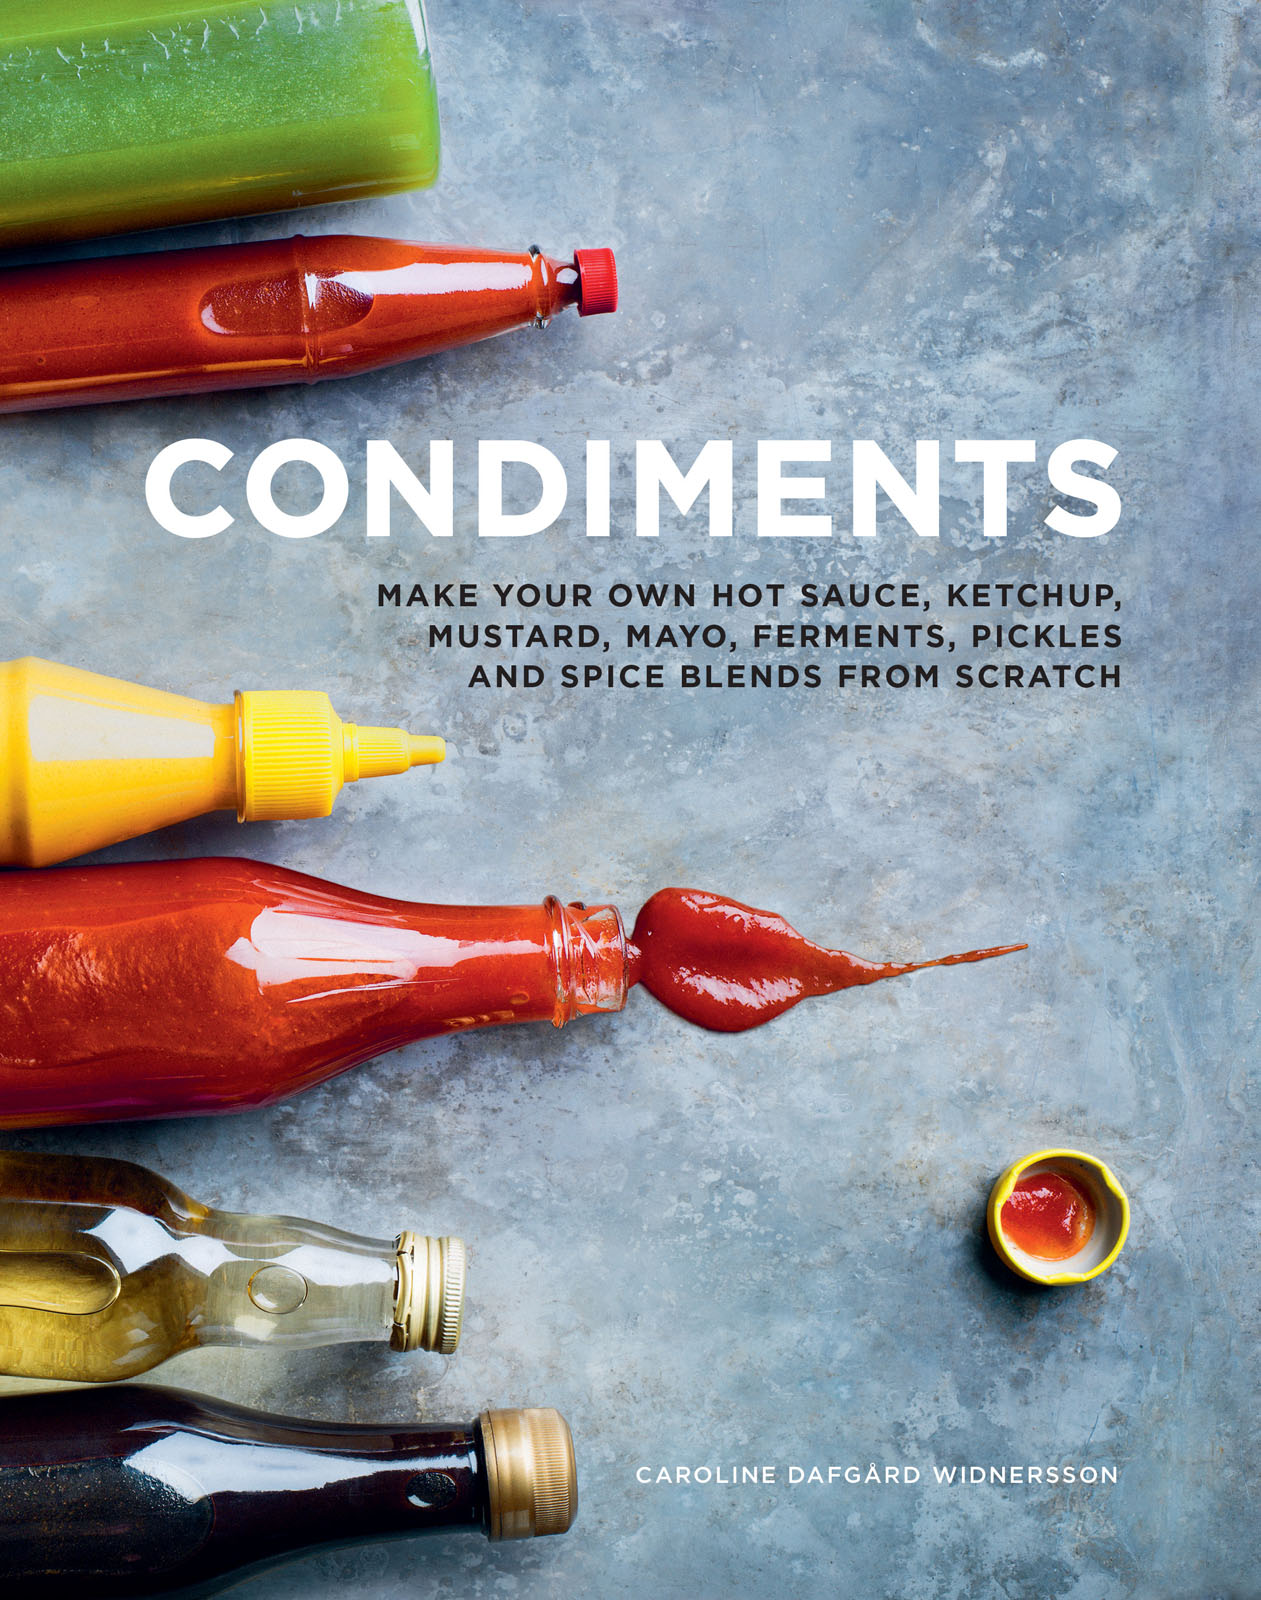 Condiments by Caroline Dafgard Widnersson (book cover)